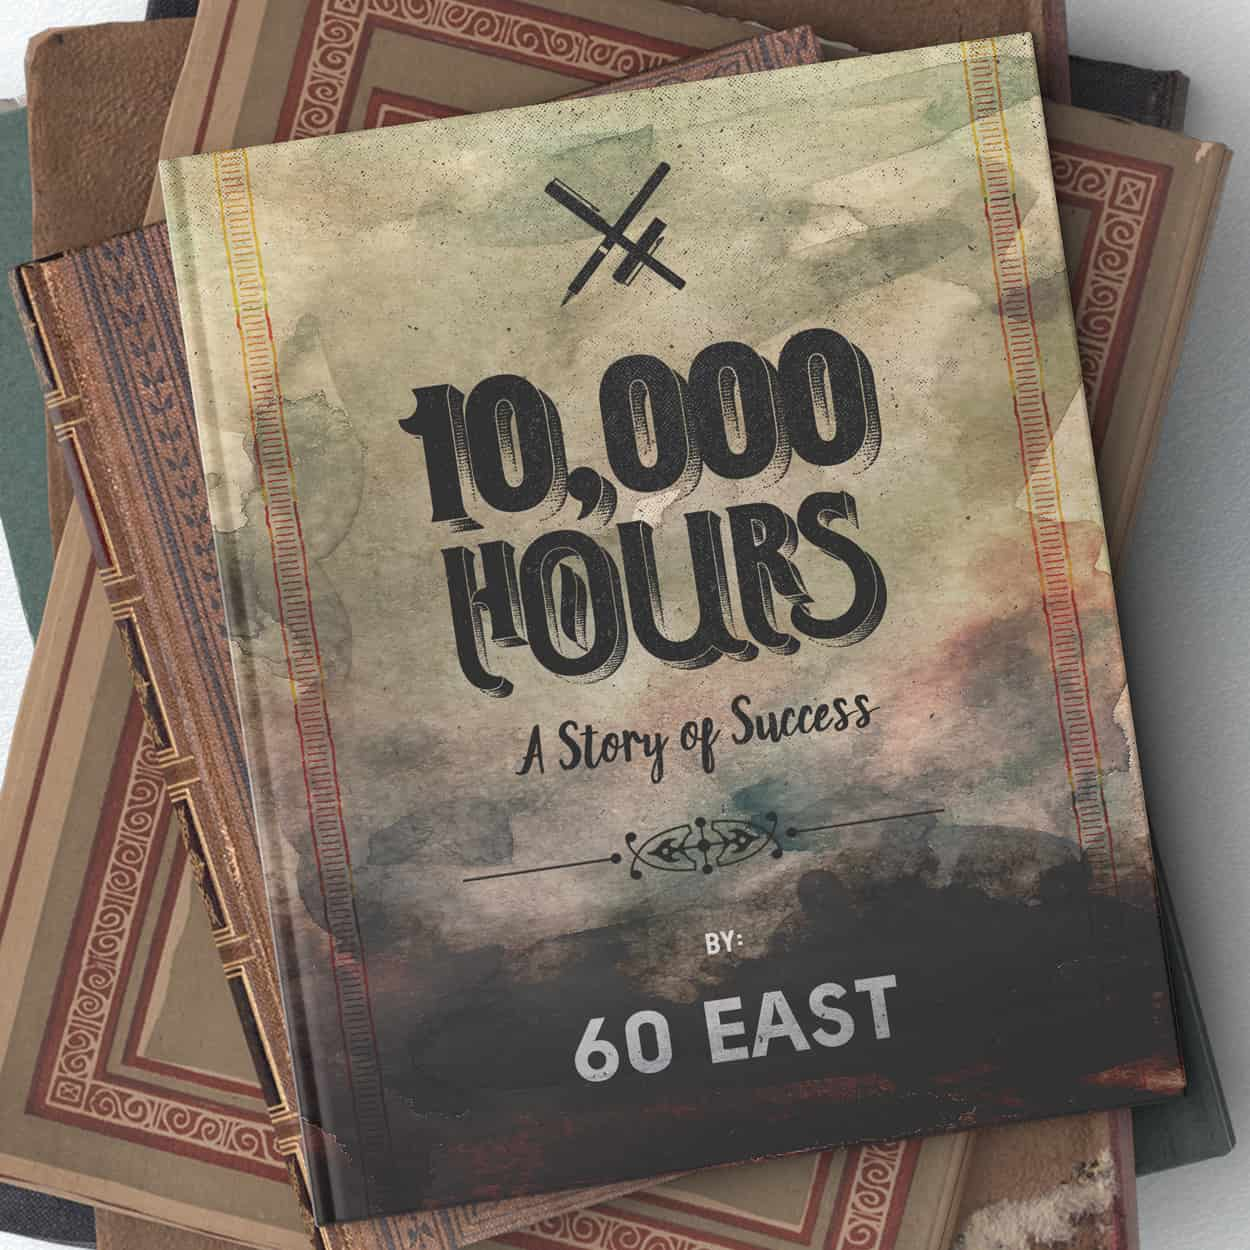 60 east - 10000 hours (a story of success) - album art design